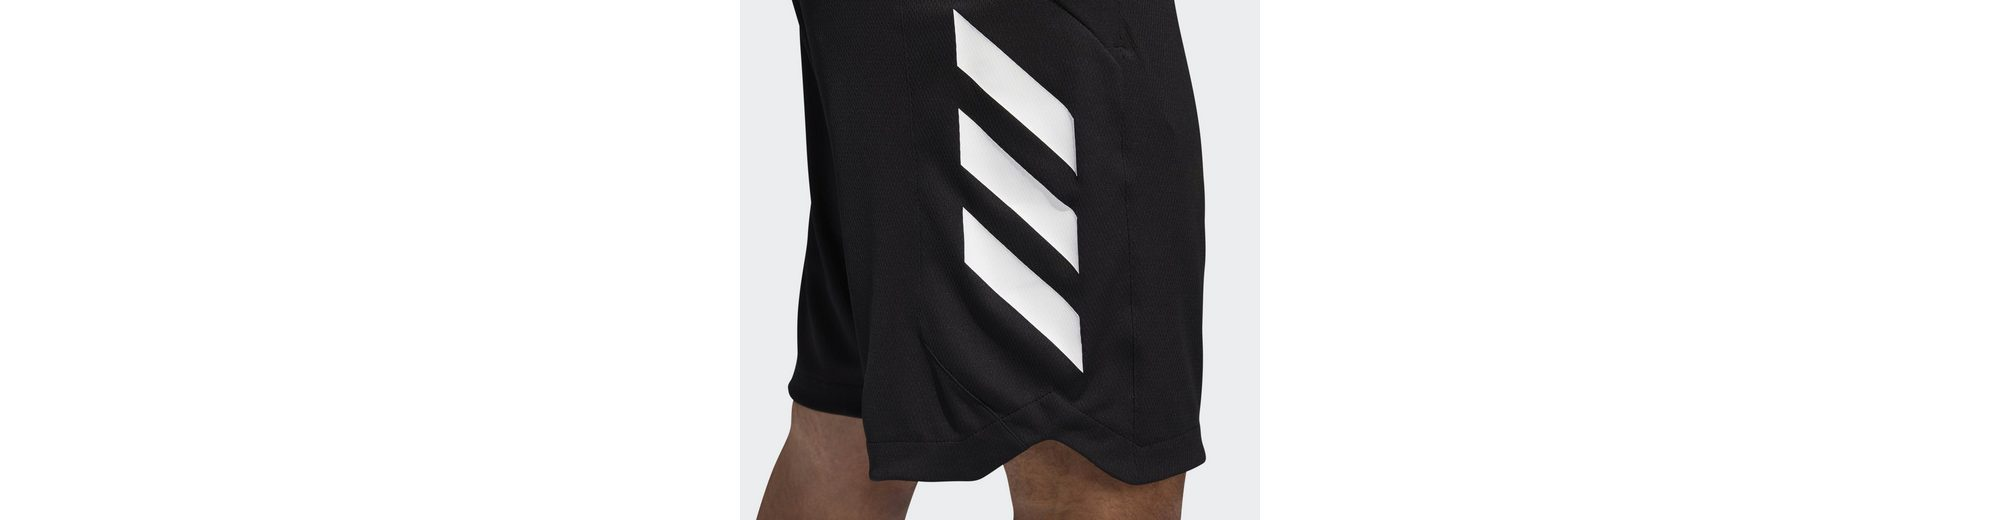 Adidas Accelerate Shorts Performance Adidas Shorts Shorts Accelerate Performance Performance Adidas x6qvqwYp